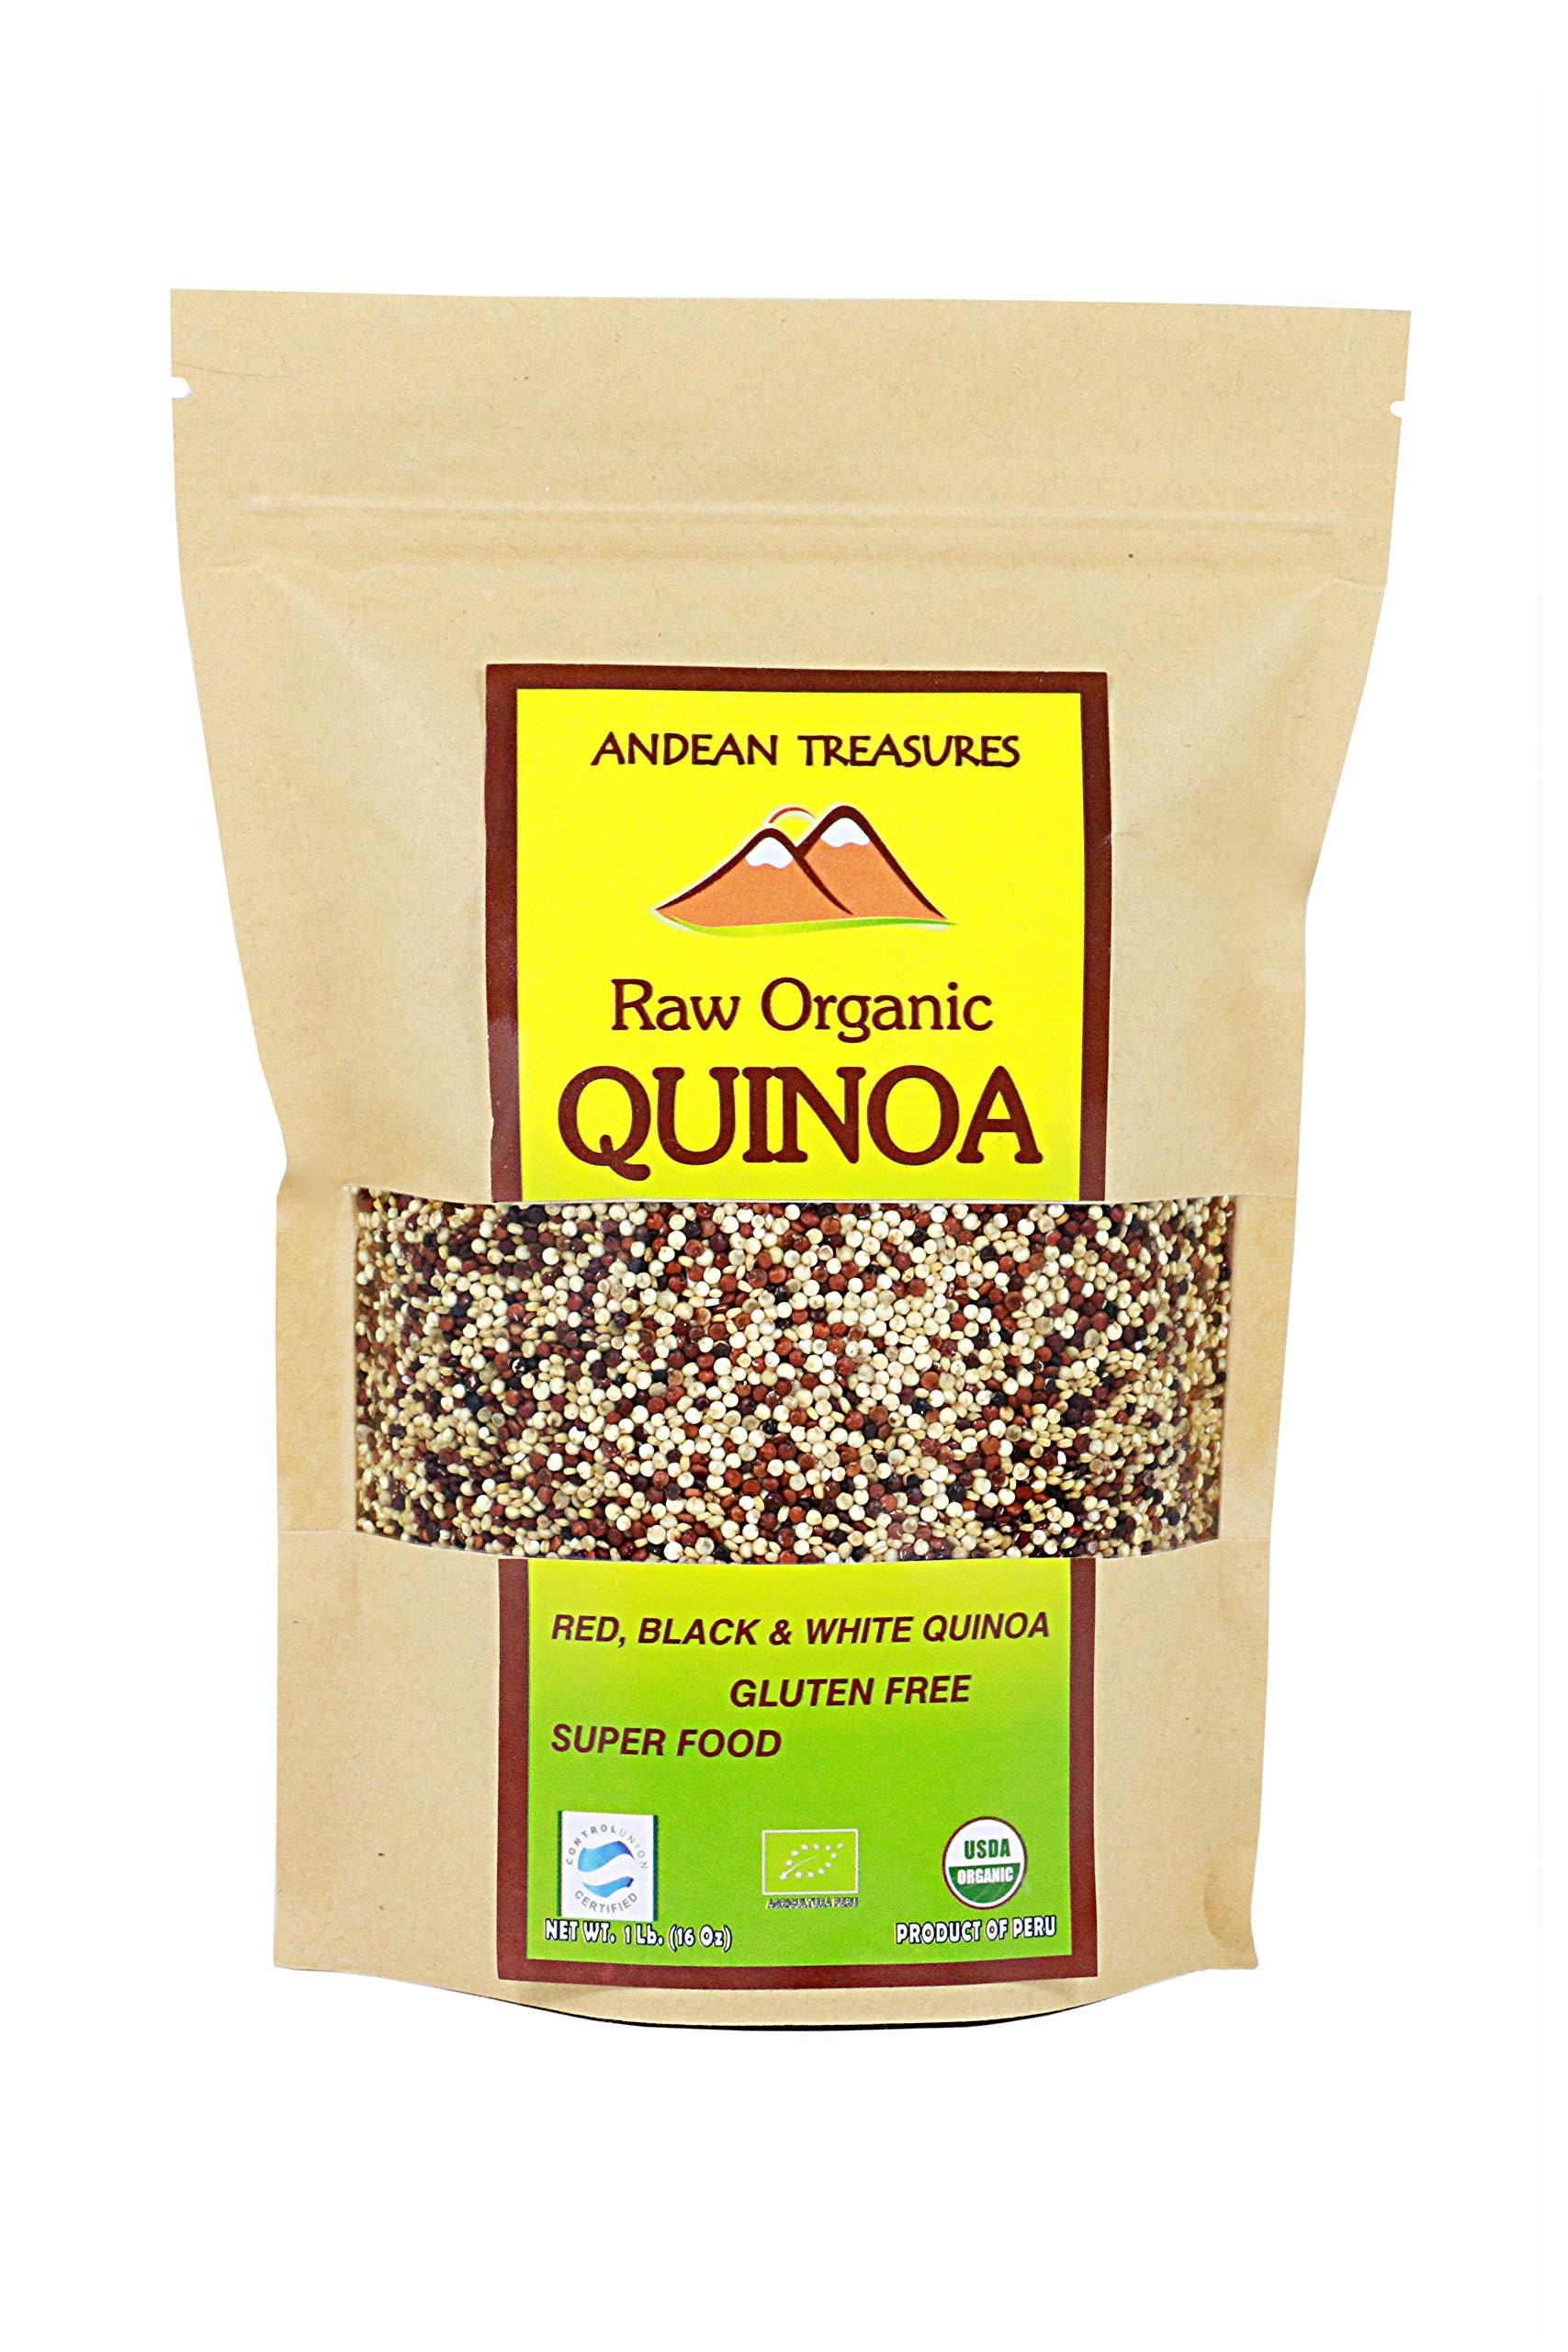 ANDEAN TREASURES RAW ORGANIC QUINOA TRICOLOR (Black, Red & White Quinoa) Gluten Free 1 LB (PACK OF 4) by ANDEAN TREASURES (Image #1)